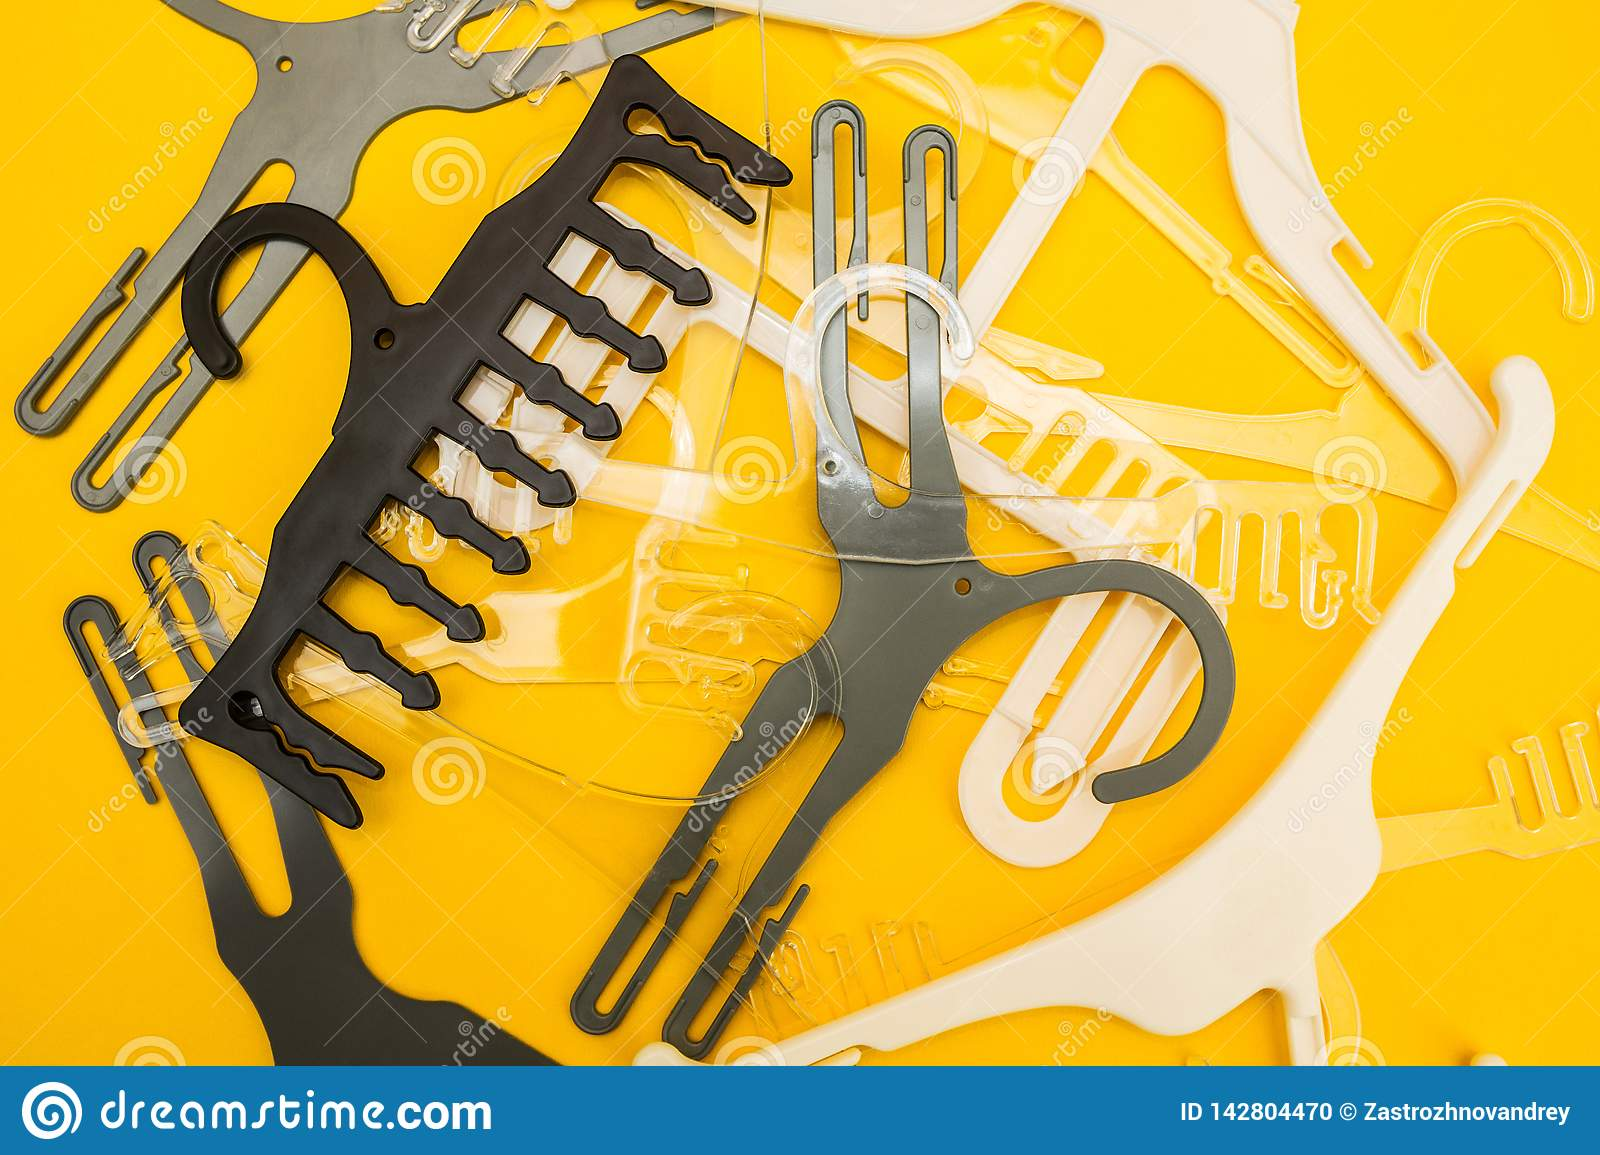 Scattered white and gray hangers on yellow background